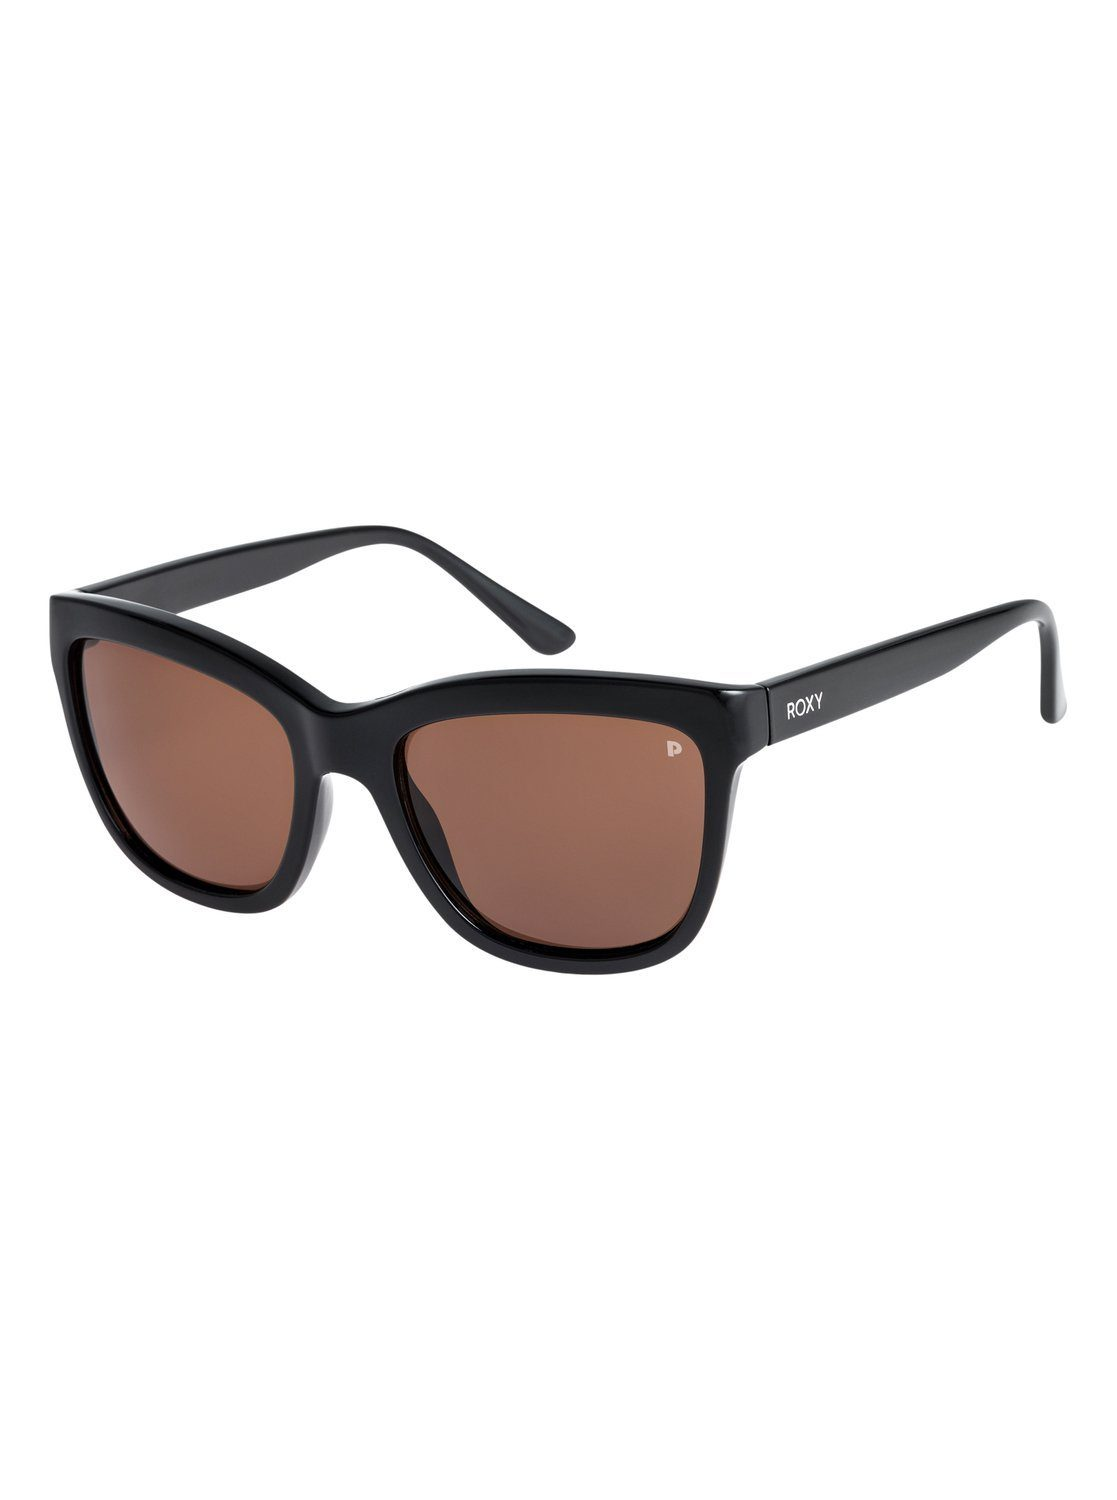 Roxy Sonnenbrille »Jane Polarised«